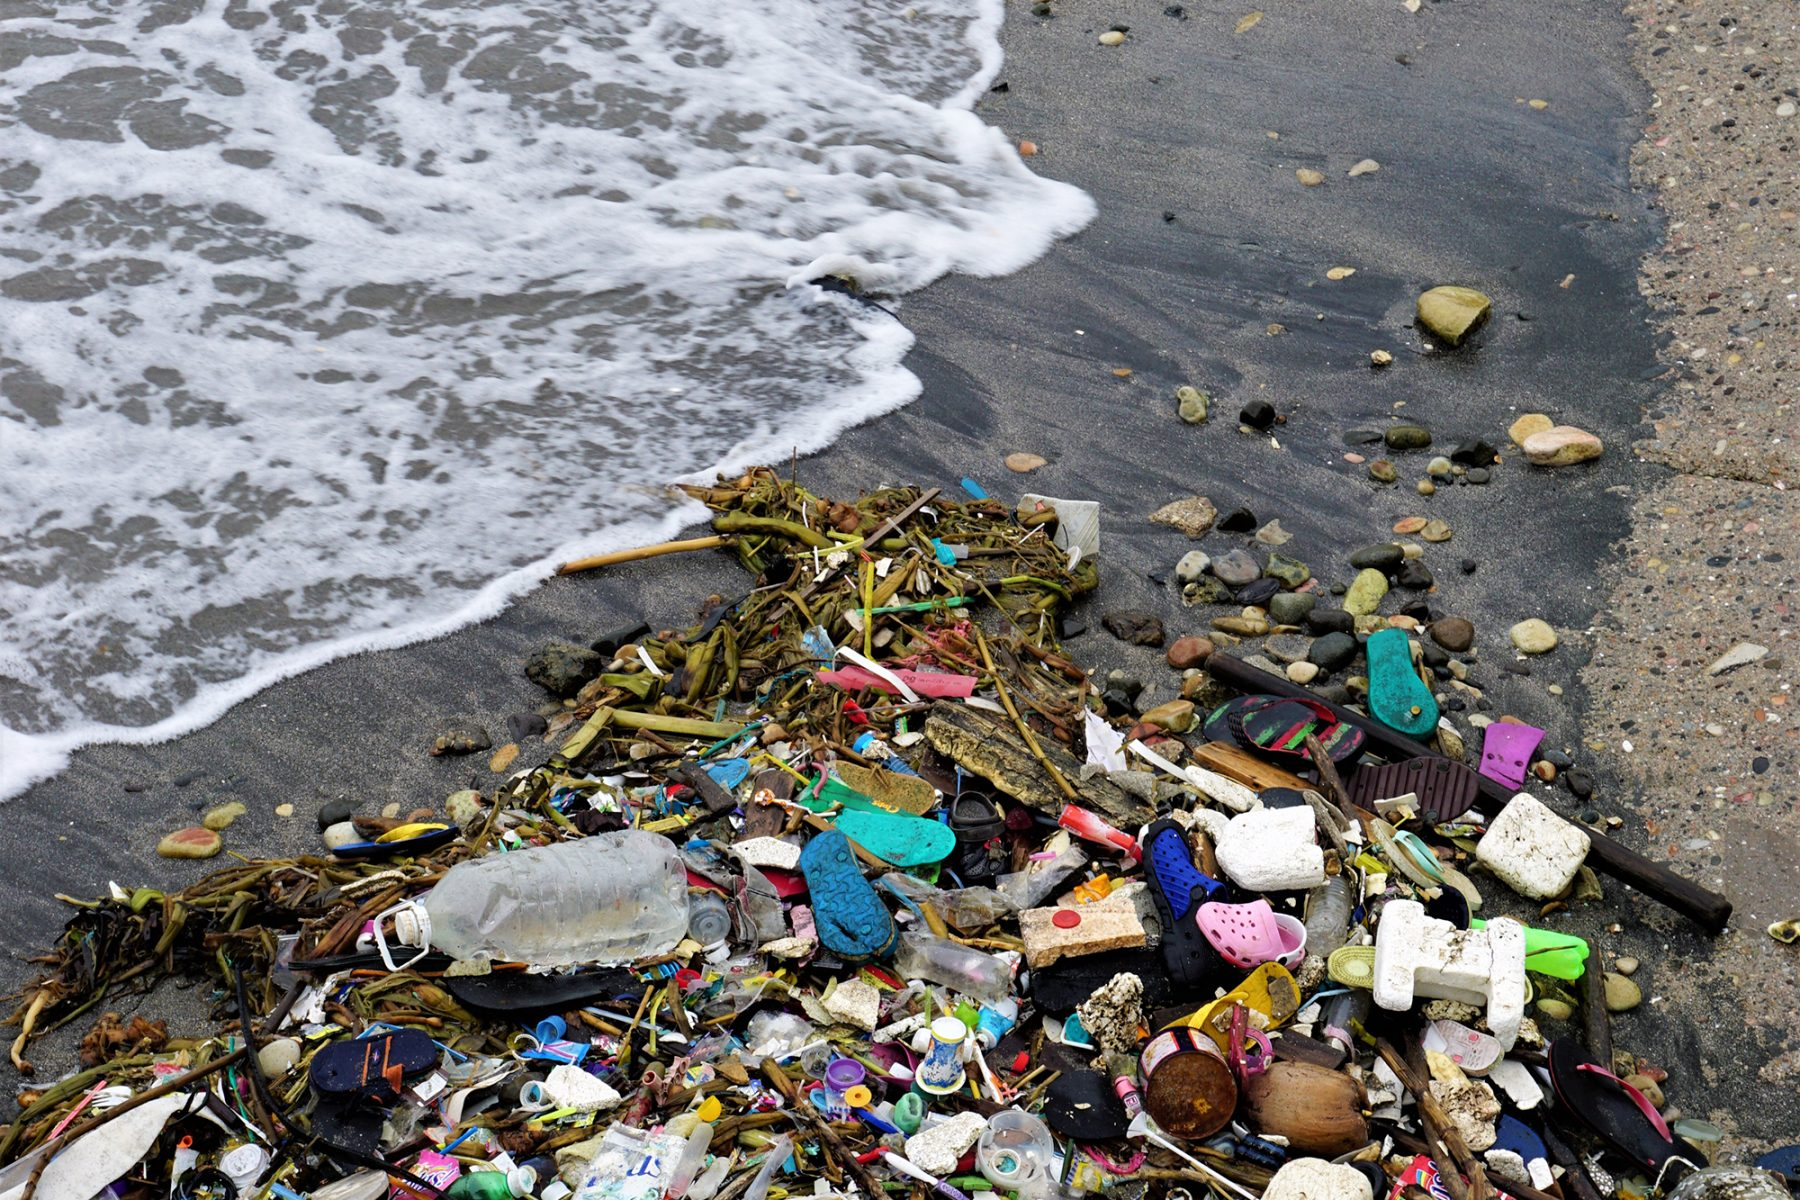 """plastic pollution World environment day - veolia is committed to beating plastic pollution """"beat plastic pollution"""" is the theme of this year's world environment day veolia is looking to significantly step up its plastic recycling work in order to."""